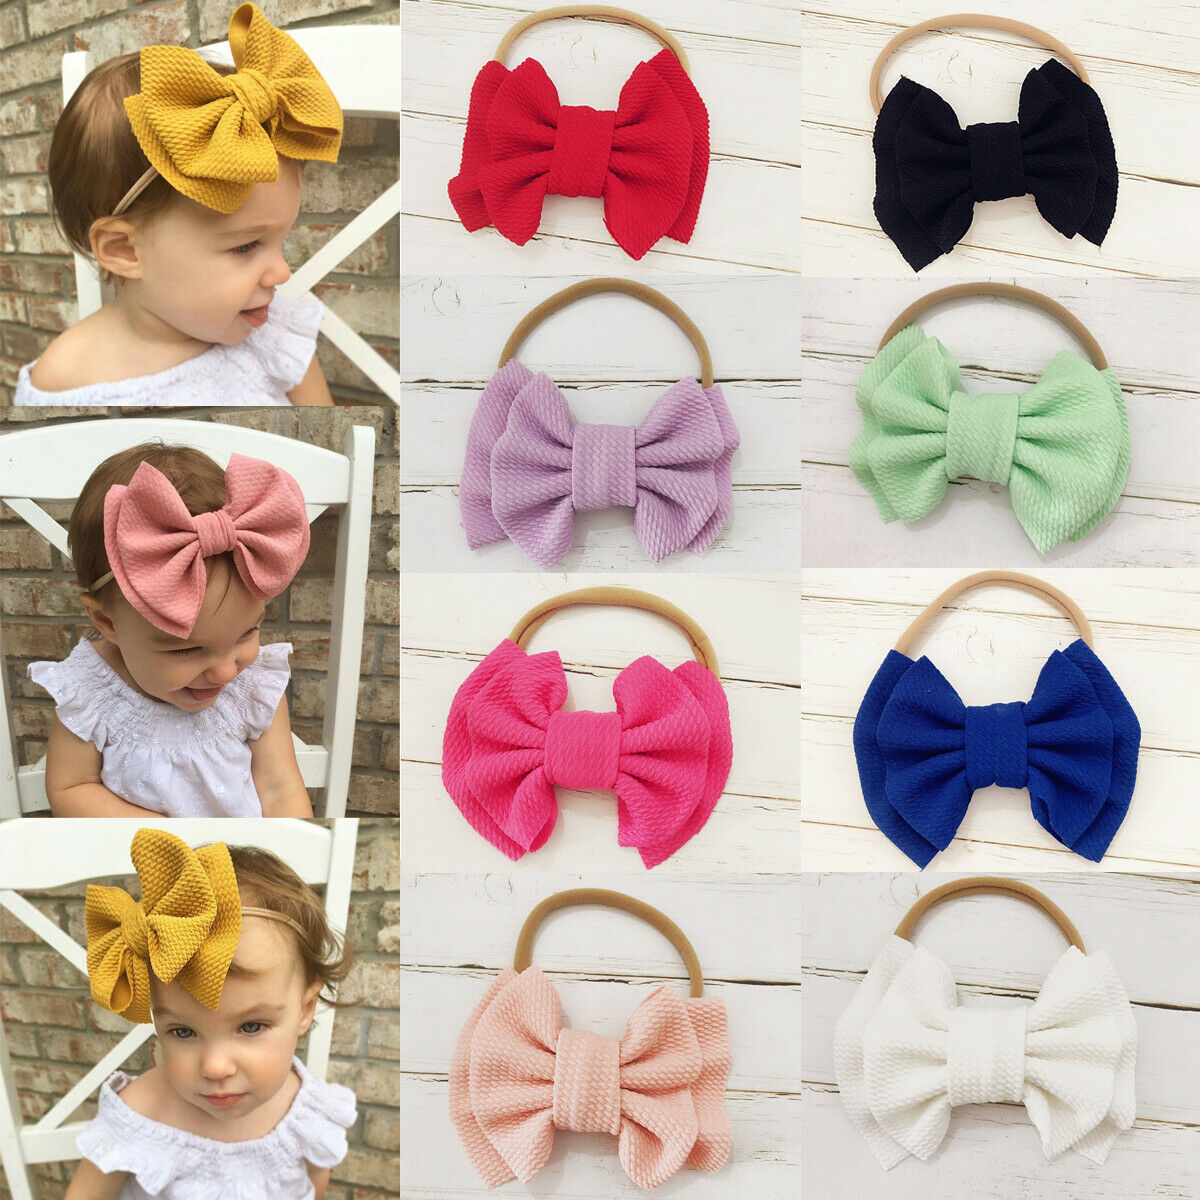 Toddler Kids Baby Girls Big Bow Hairband Knot Elastic Headband Hair Accessories Black Blue White Red Yellow Accessories